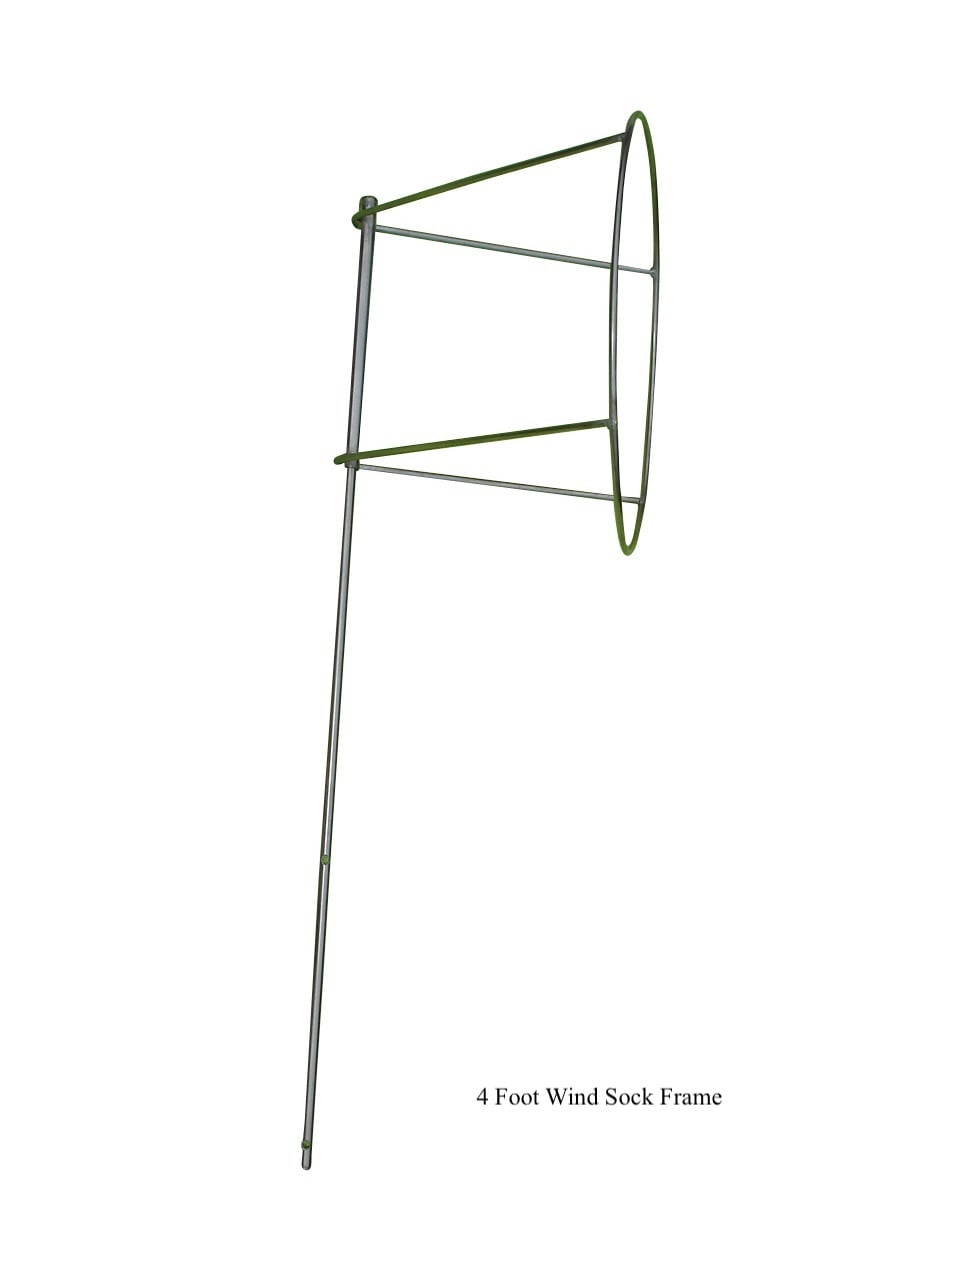 4 foot frame X 3 - Commercial Windsock Frames (4, 6, 8, and 12 foot)